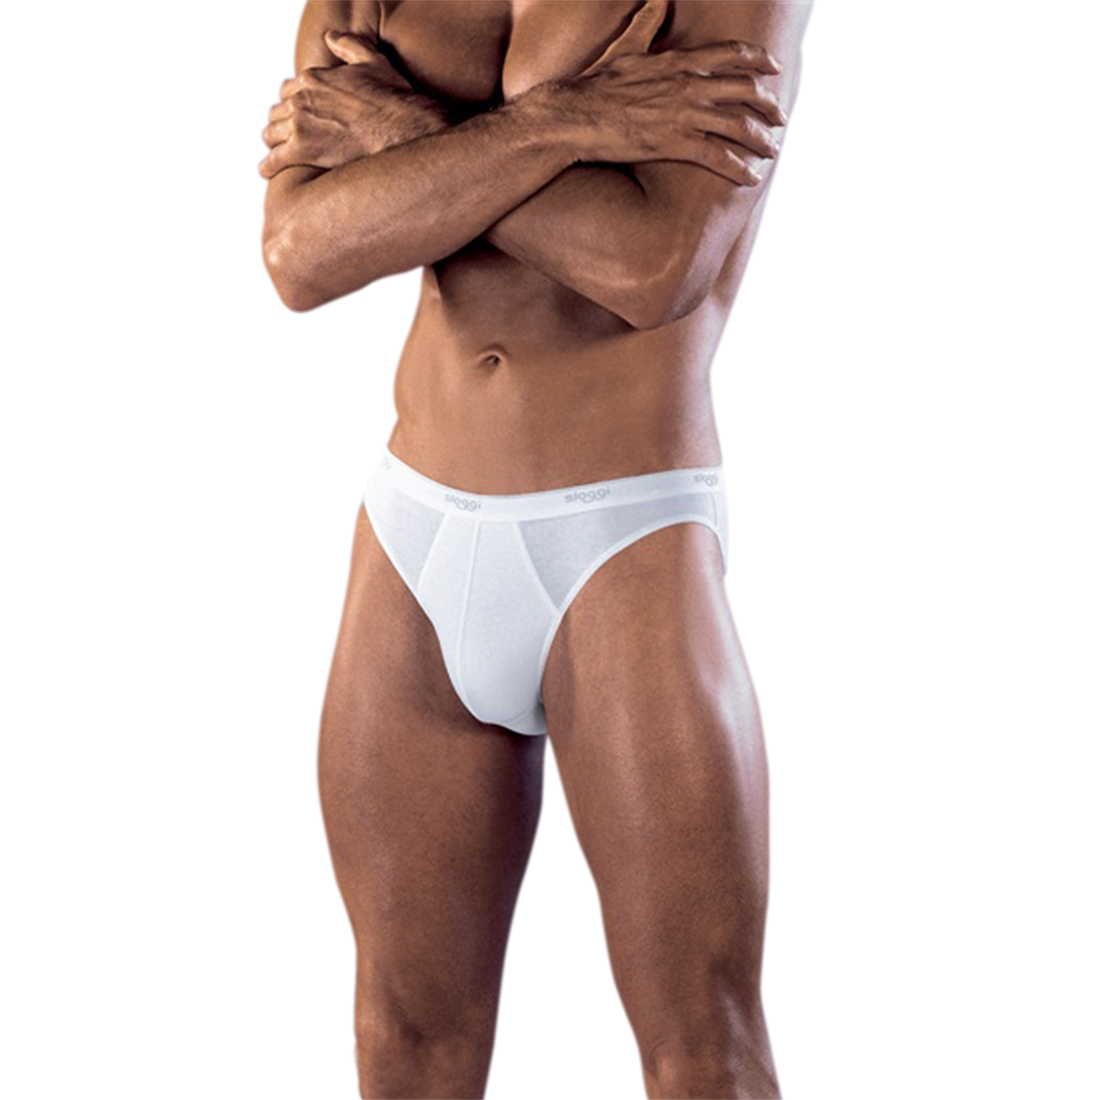 Sloggi Basic Mini S1 briefs - Sloggi Mini